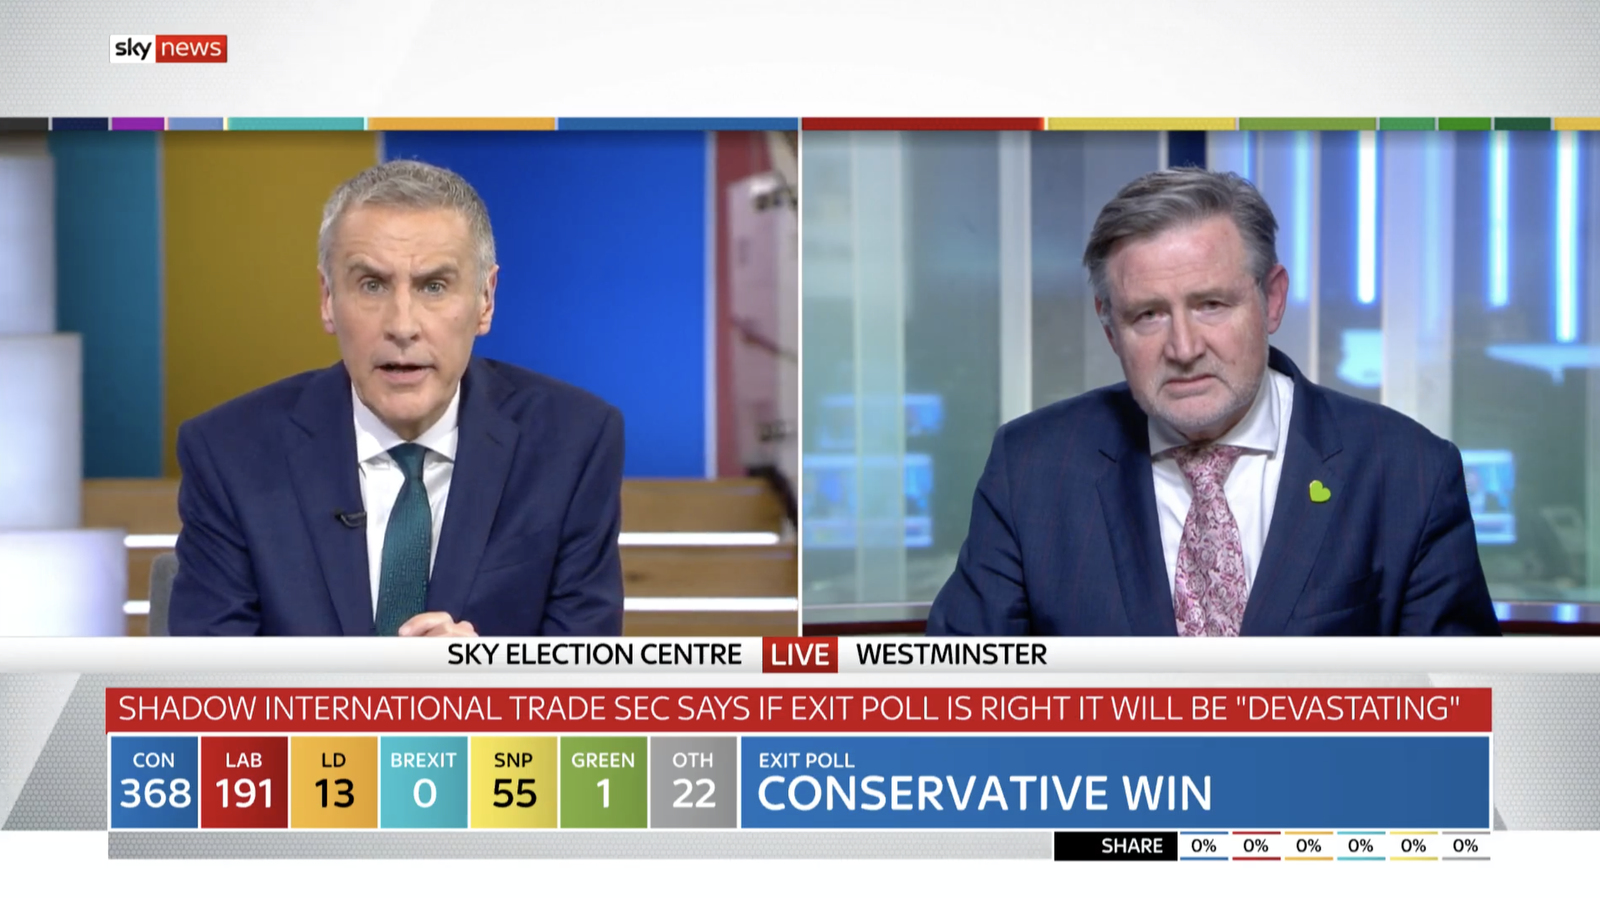 NCS_Sky-News-2019-General-Election_029